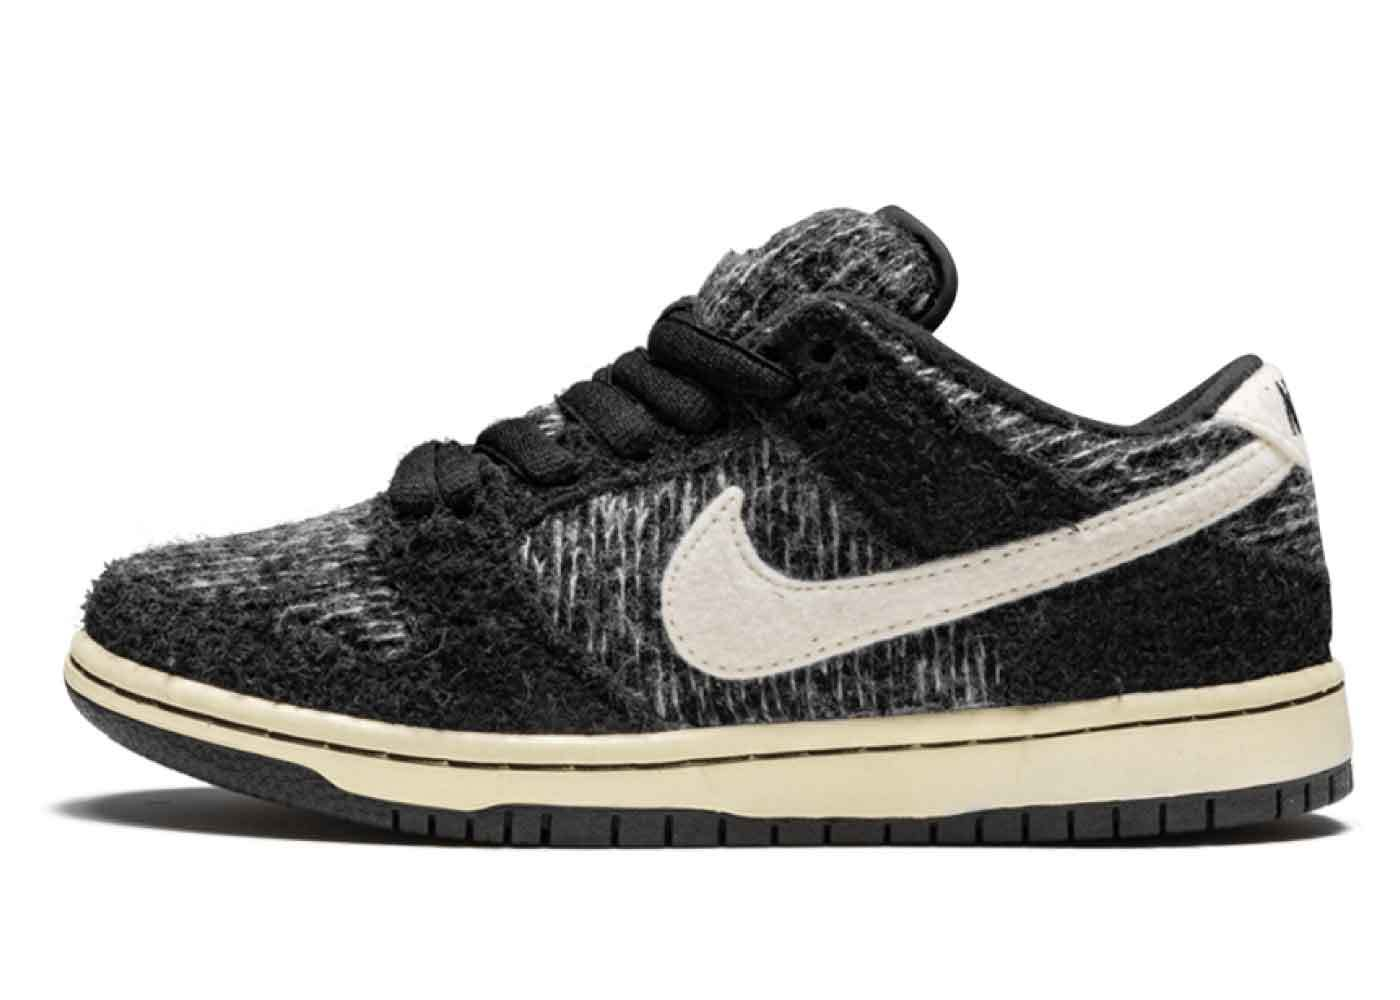 Nike Dunk Low Warmth Packの写真